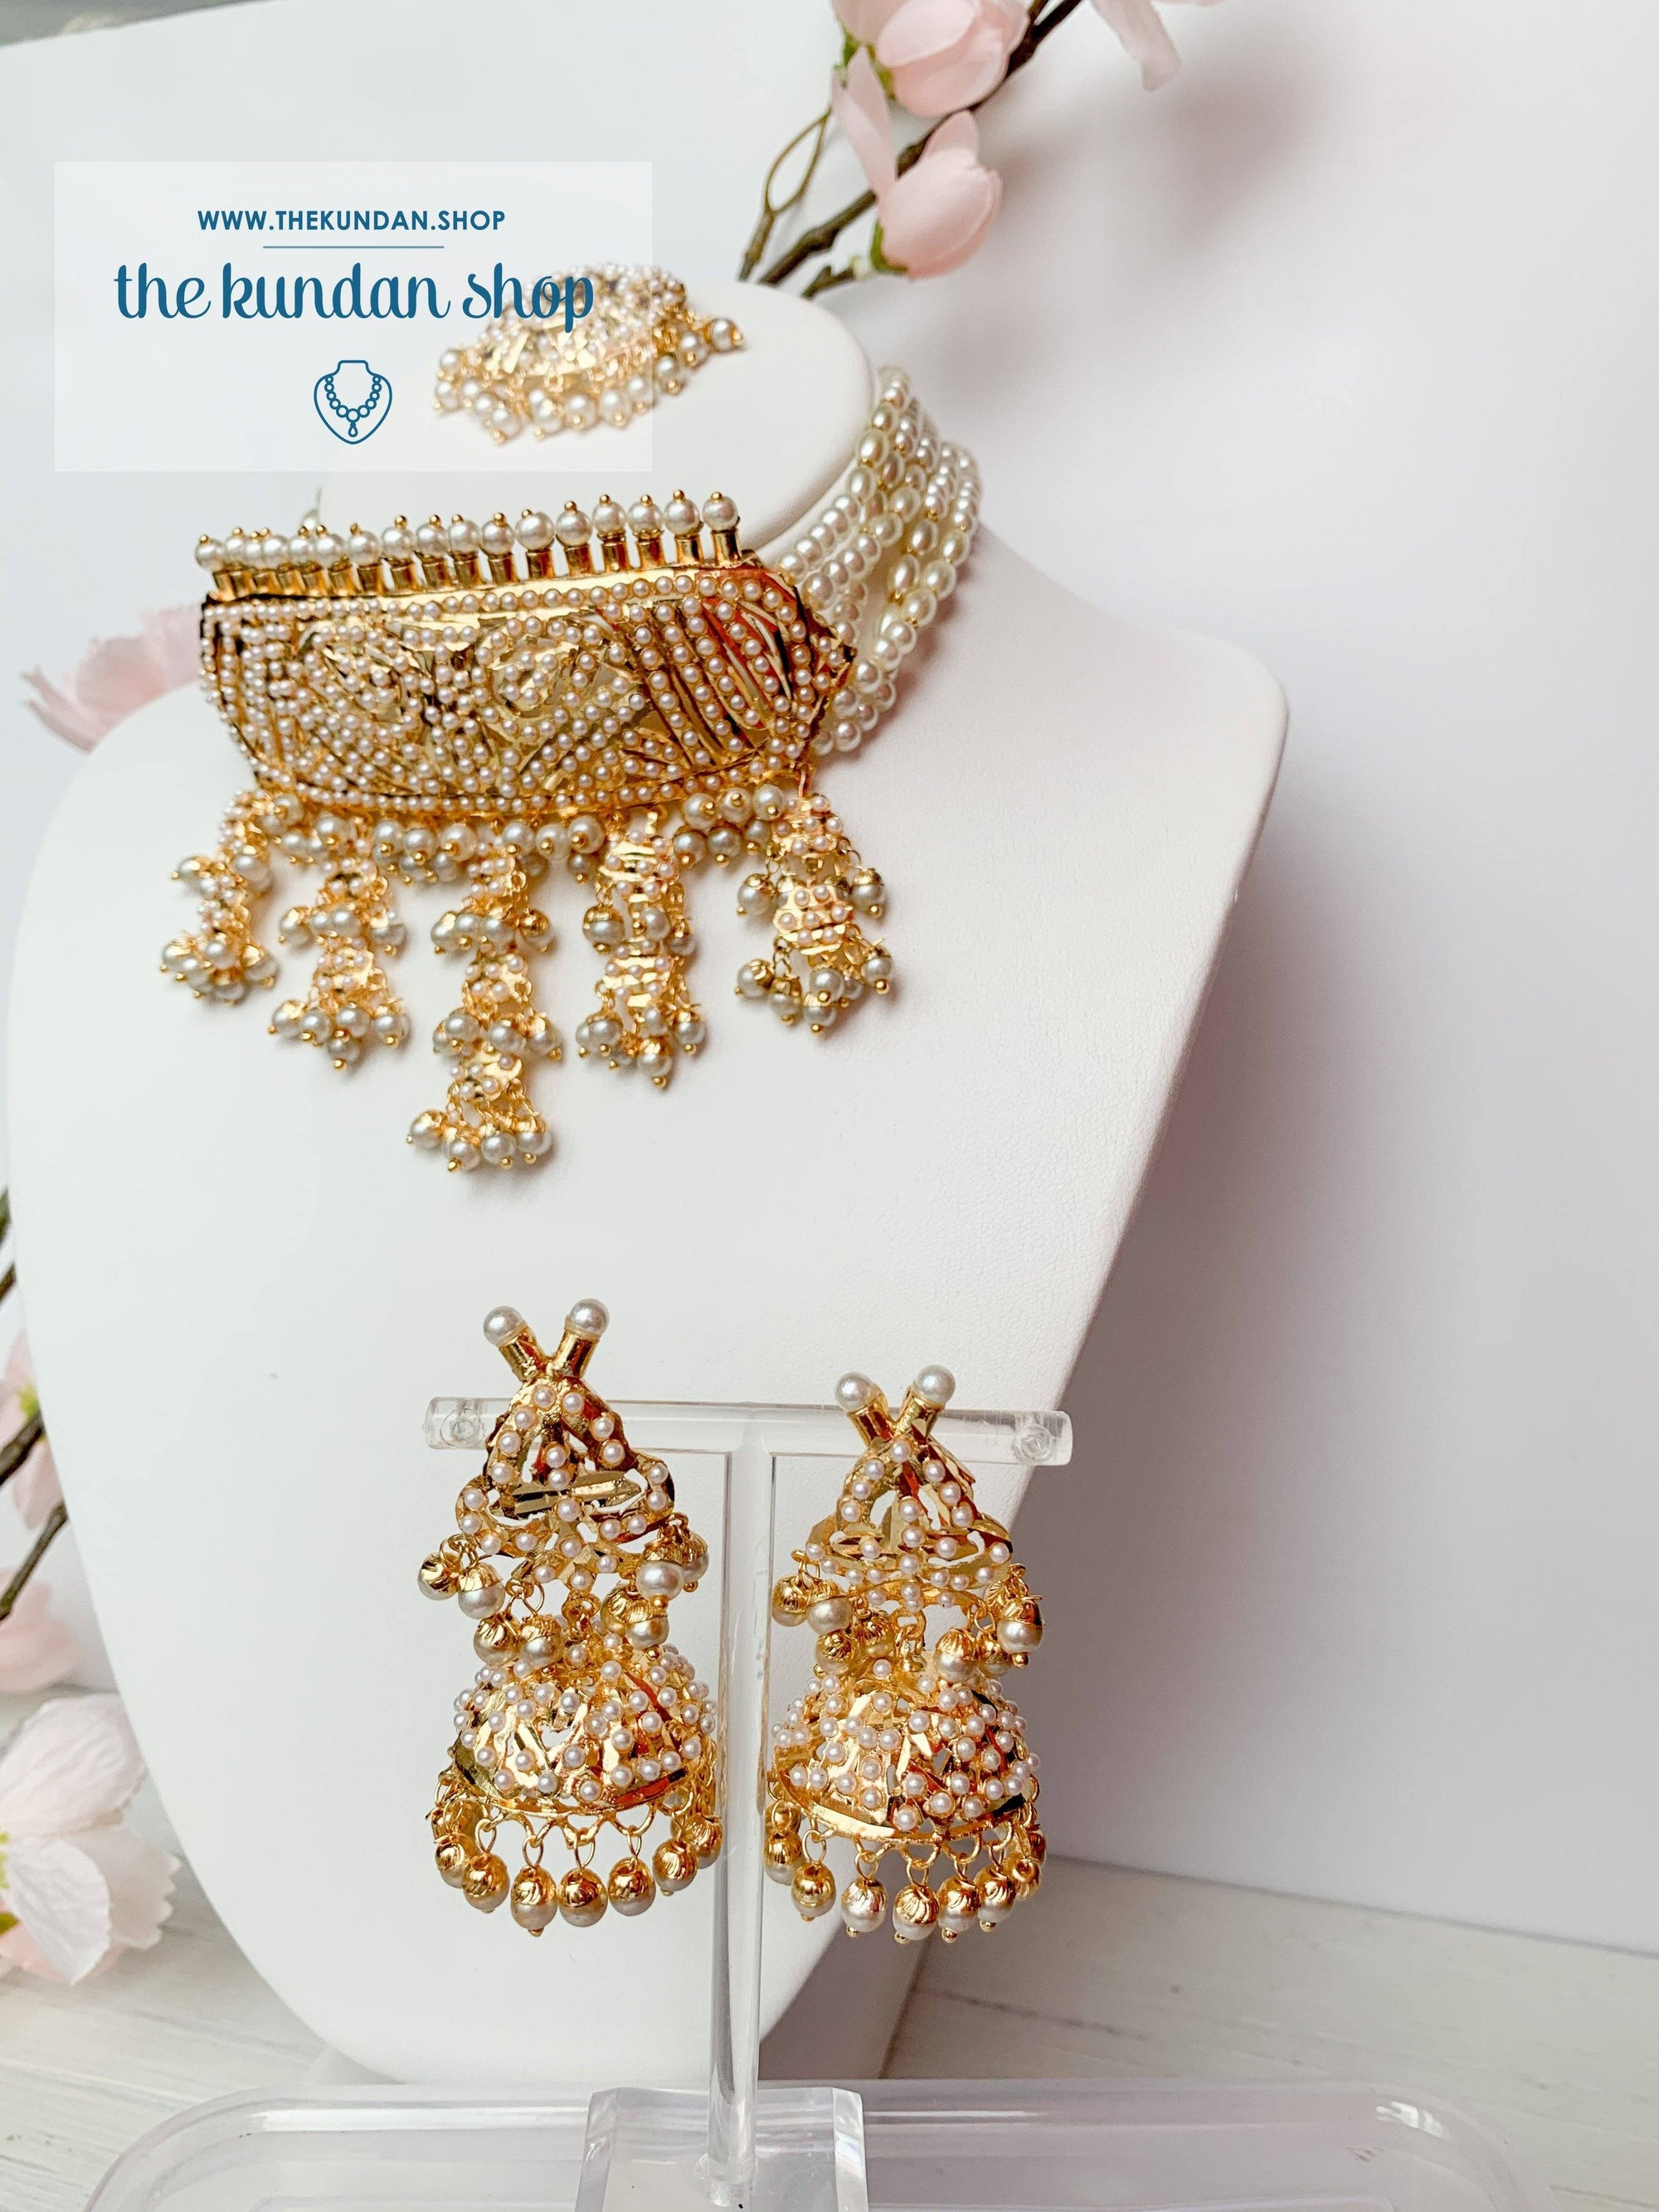 Compliment Choker in Pearl Necklace Sets THE KUNDAN SHOP